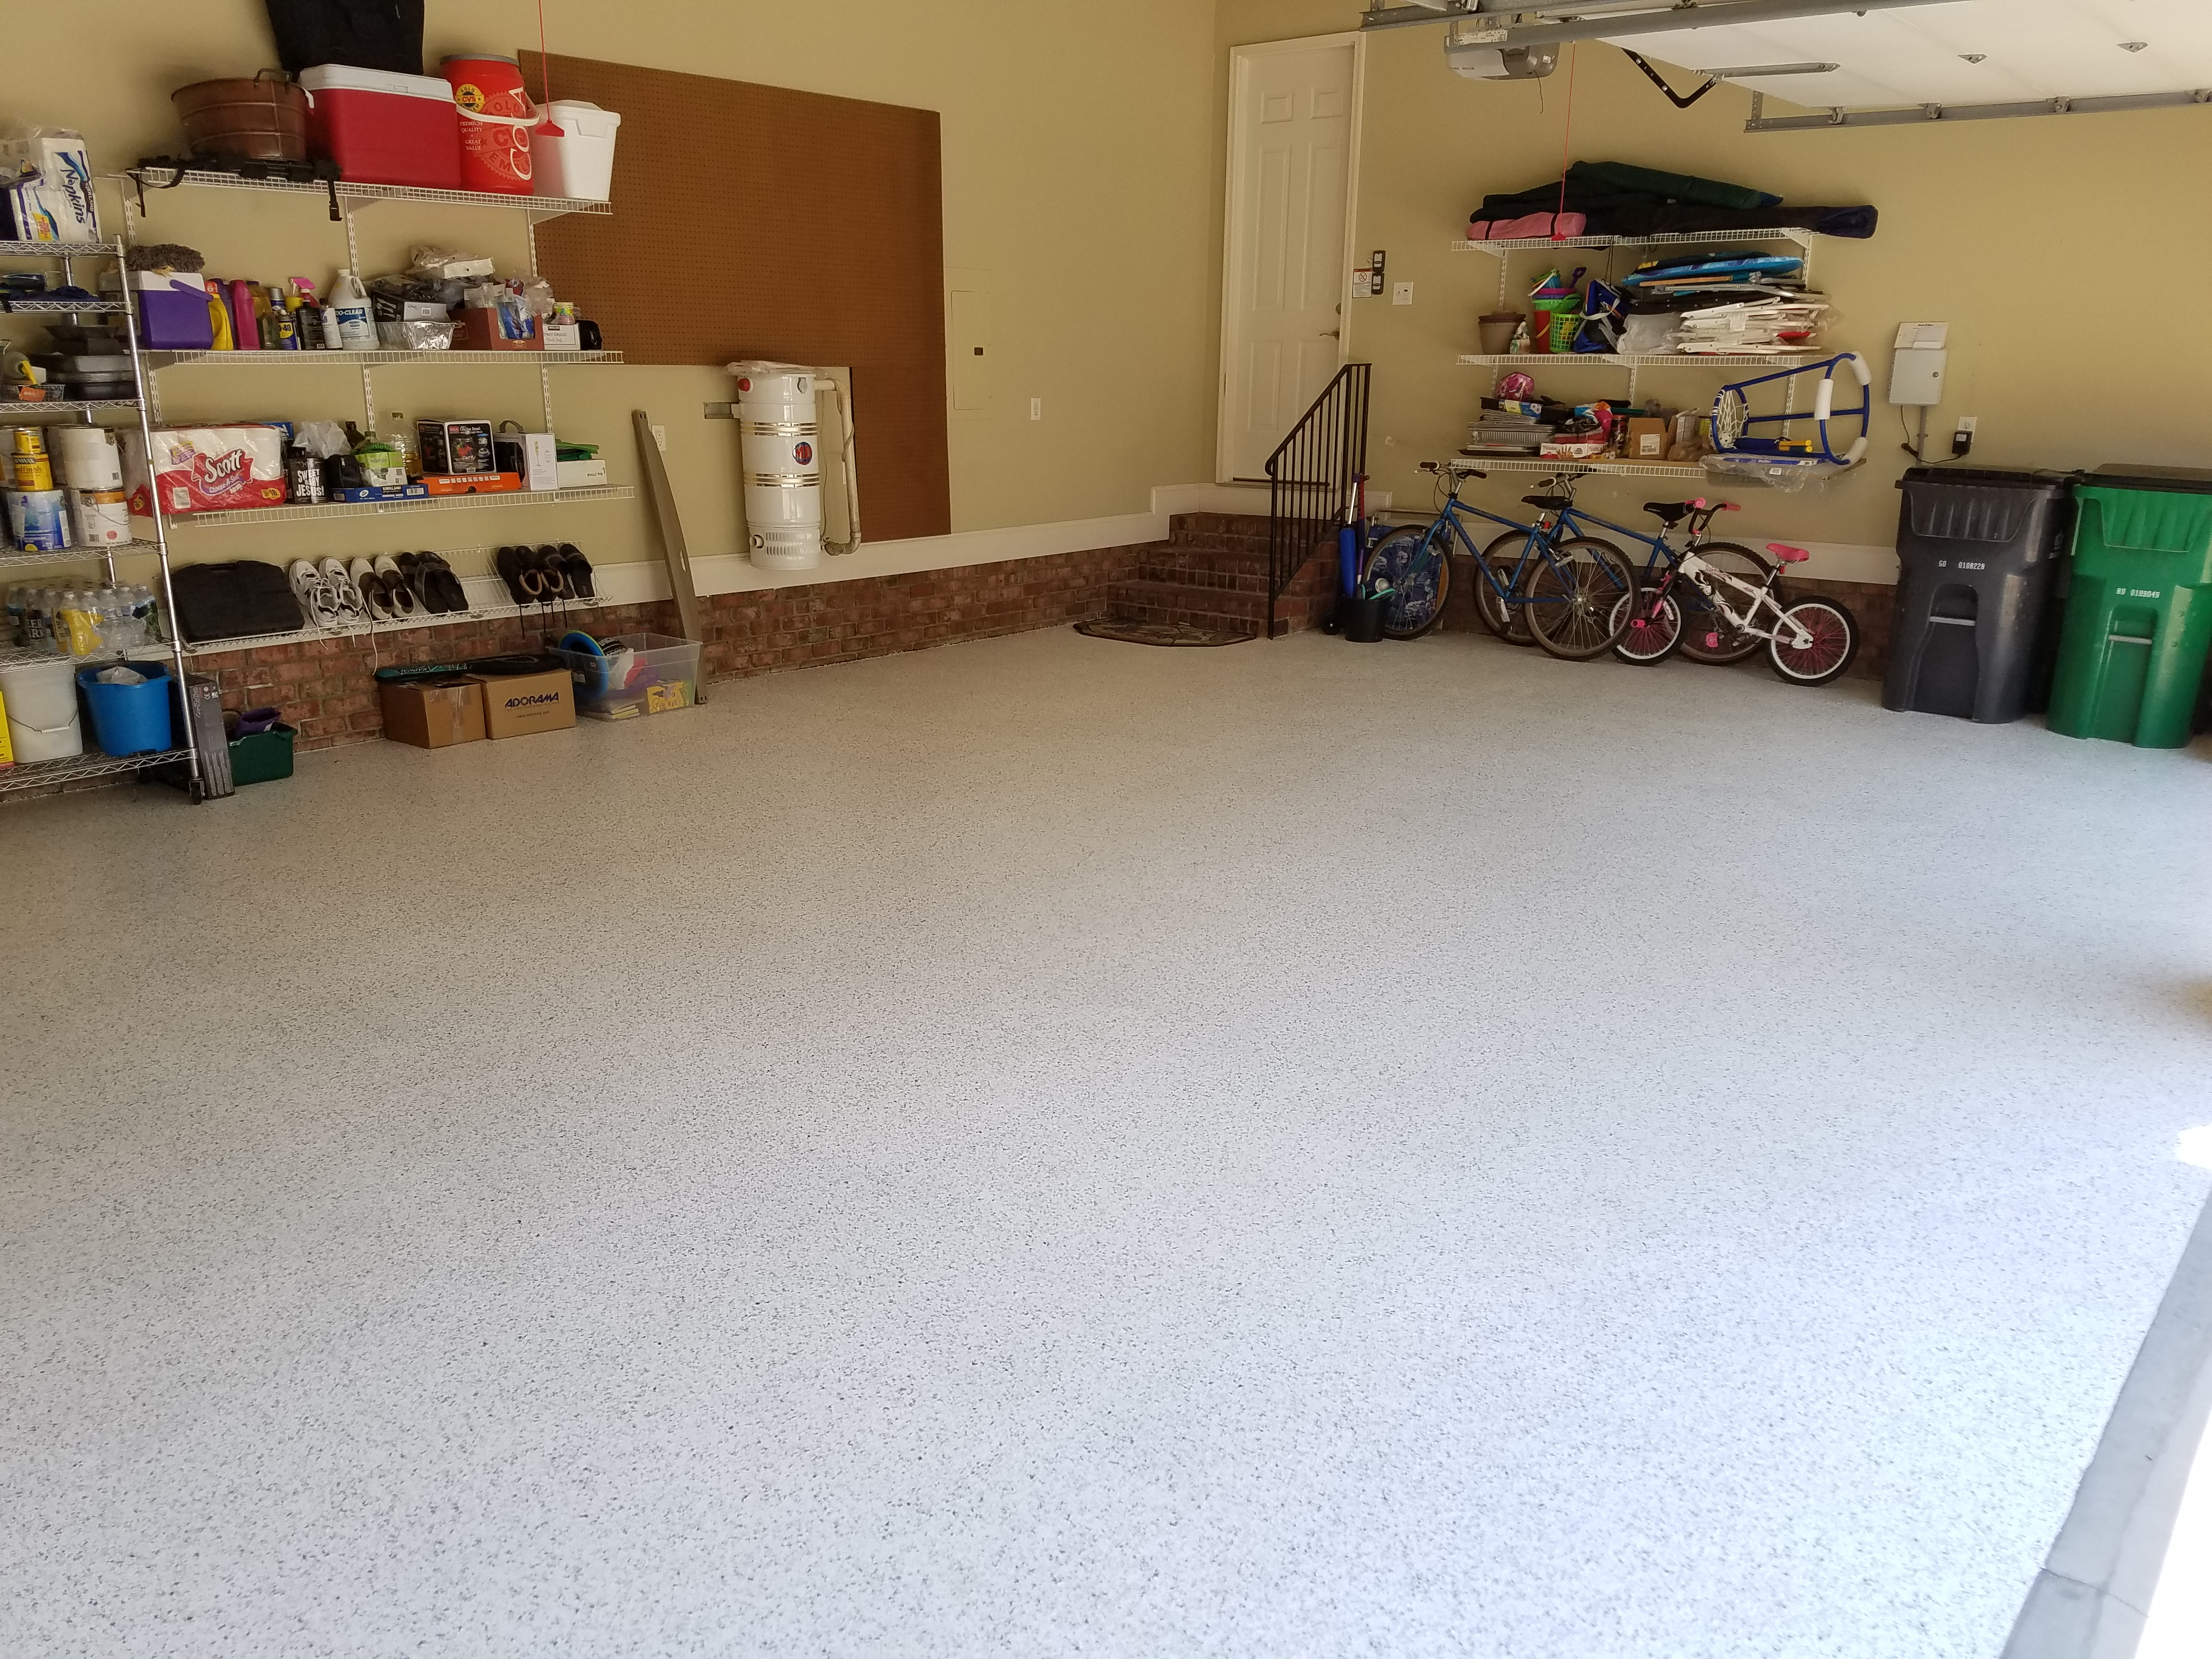 kb flooring pebble epoxy forums tec homes best your materialsmethods jpg floors in home modern livemodern